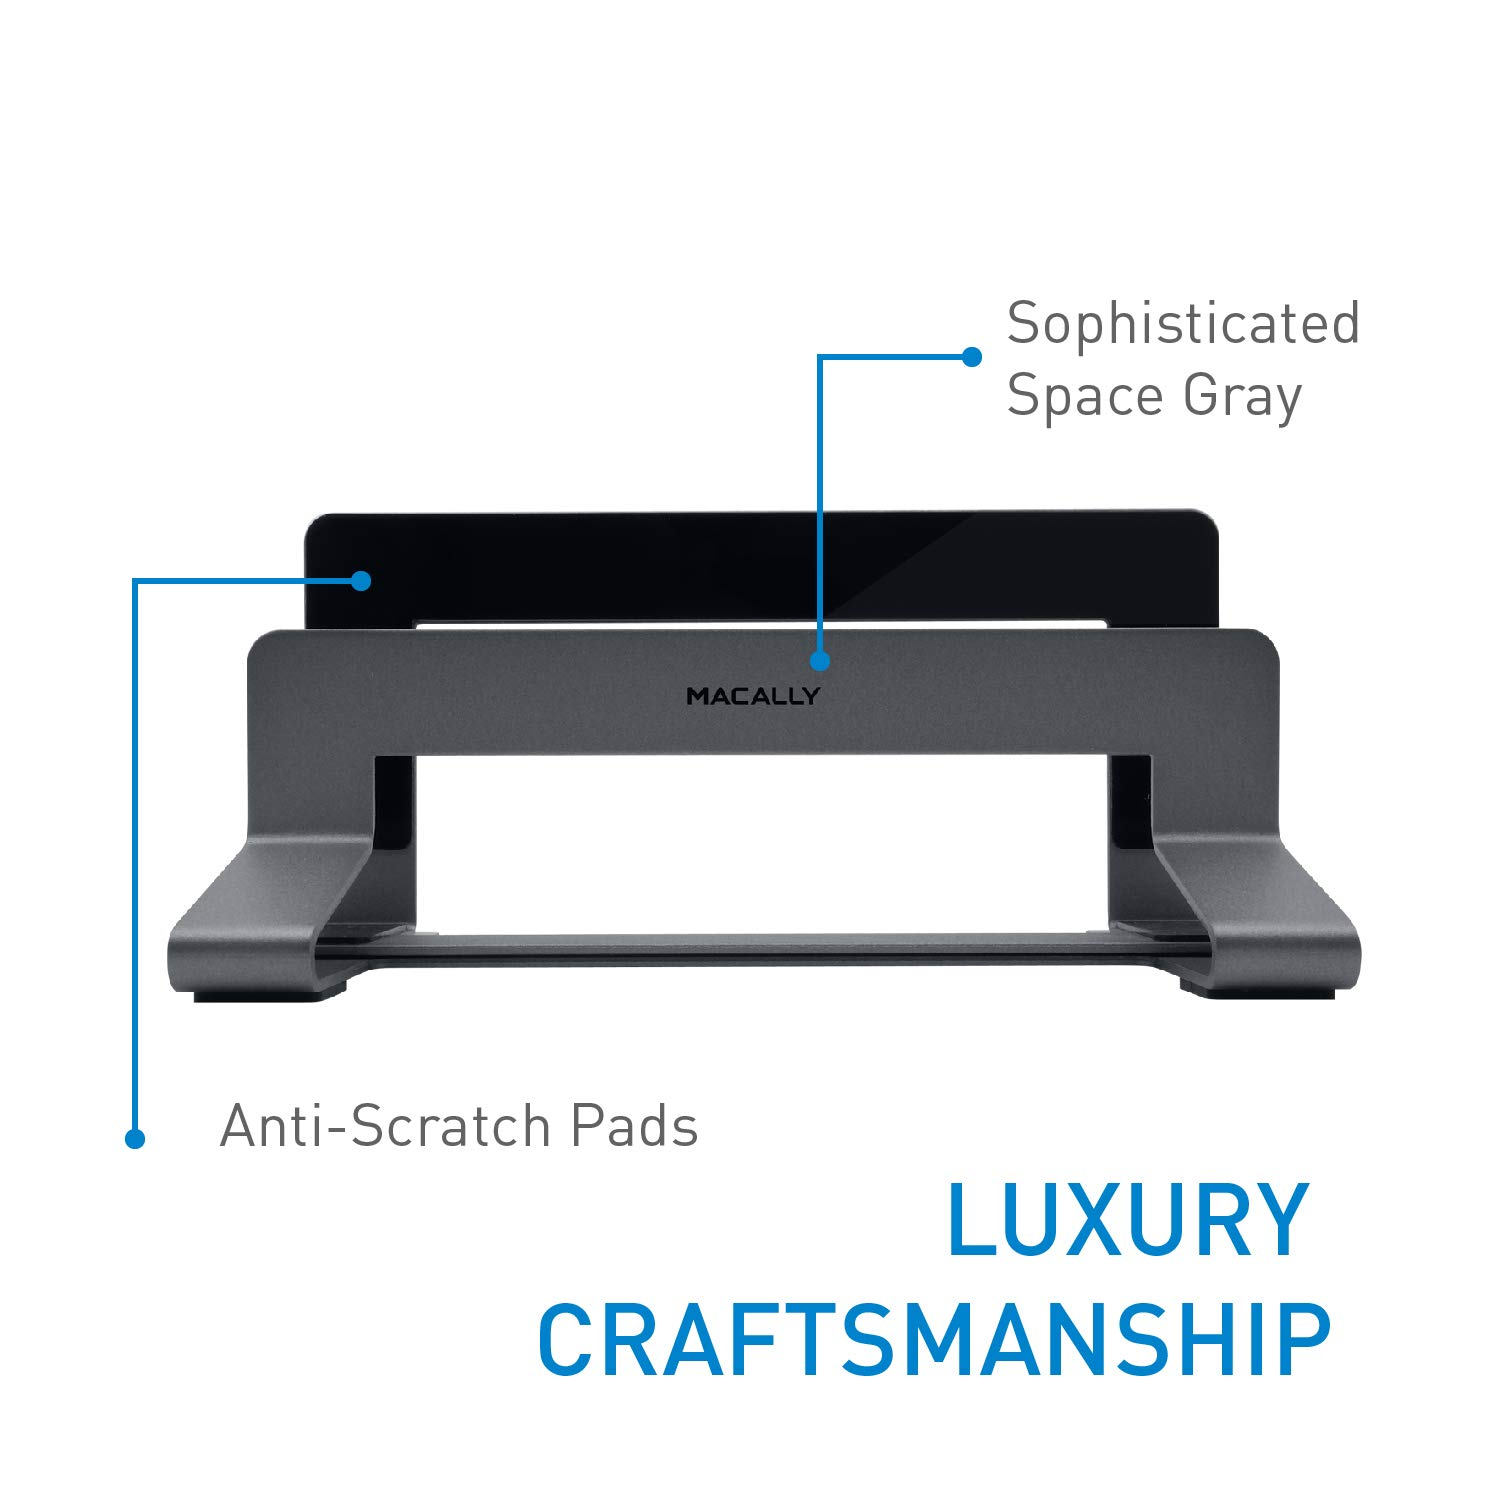 Macally Vertical Laptop Stand for Desk Space - Adjustable Vertical Stand Cradle - Laptop Holder - Apple MacBook Pro Air/Asus Chromebook Flip Samsung Notebook 9 Lenovo ThinkPad Dell XPS Acer Switch by Macally (Image #3)